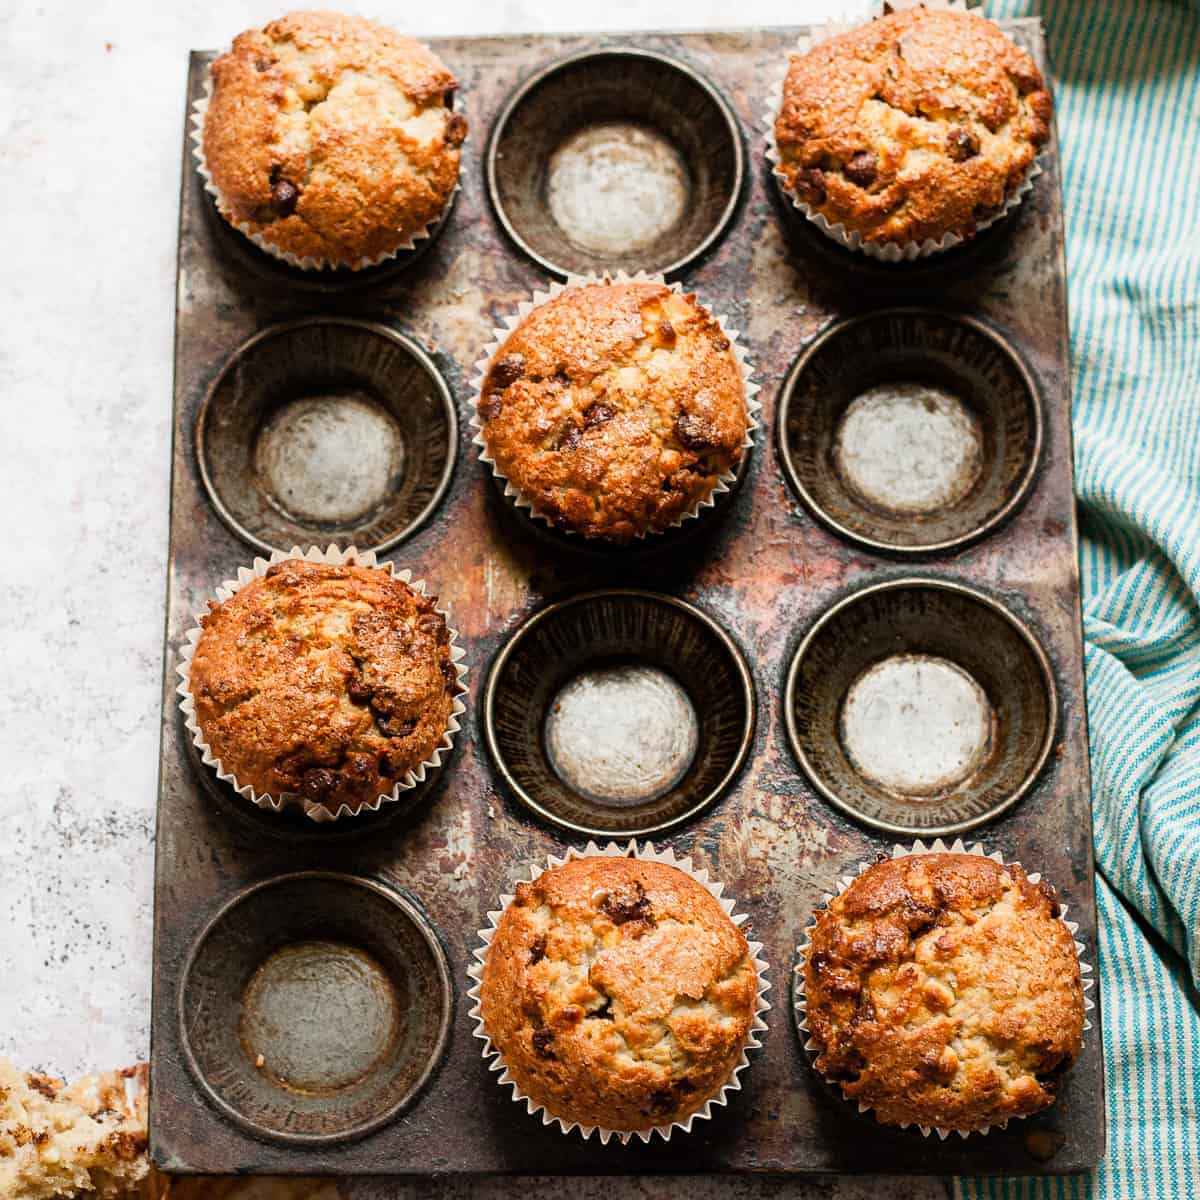 Muffins in a baking tin with a blue tea towel